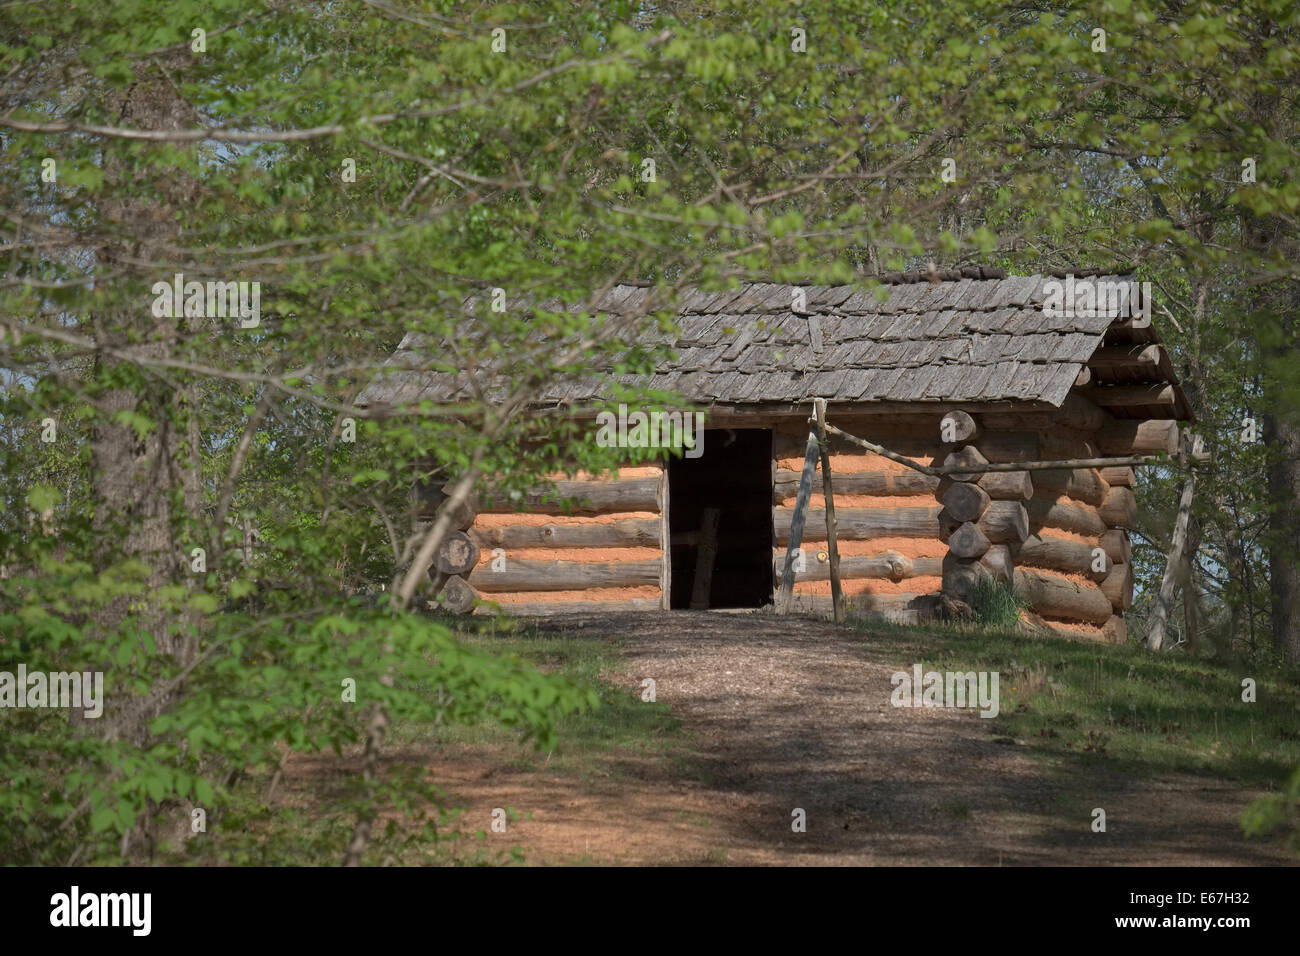 Boone's Cave Park 1740s Style Cabin - Stock Image